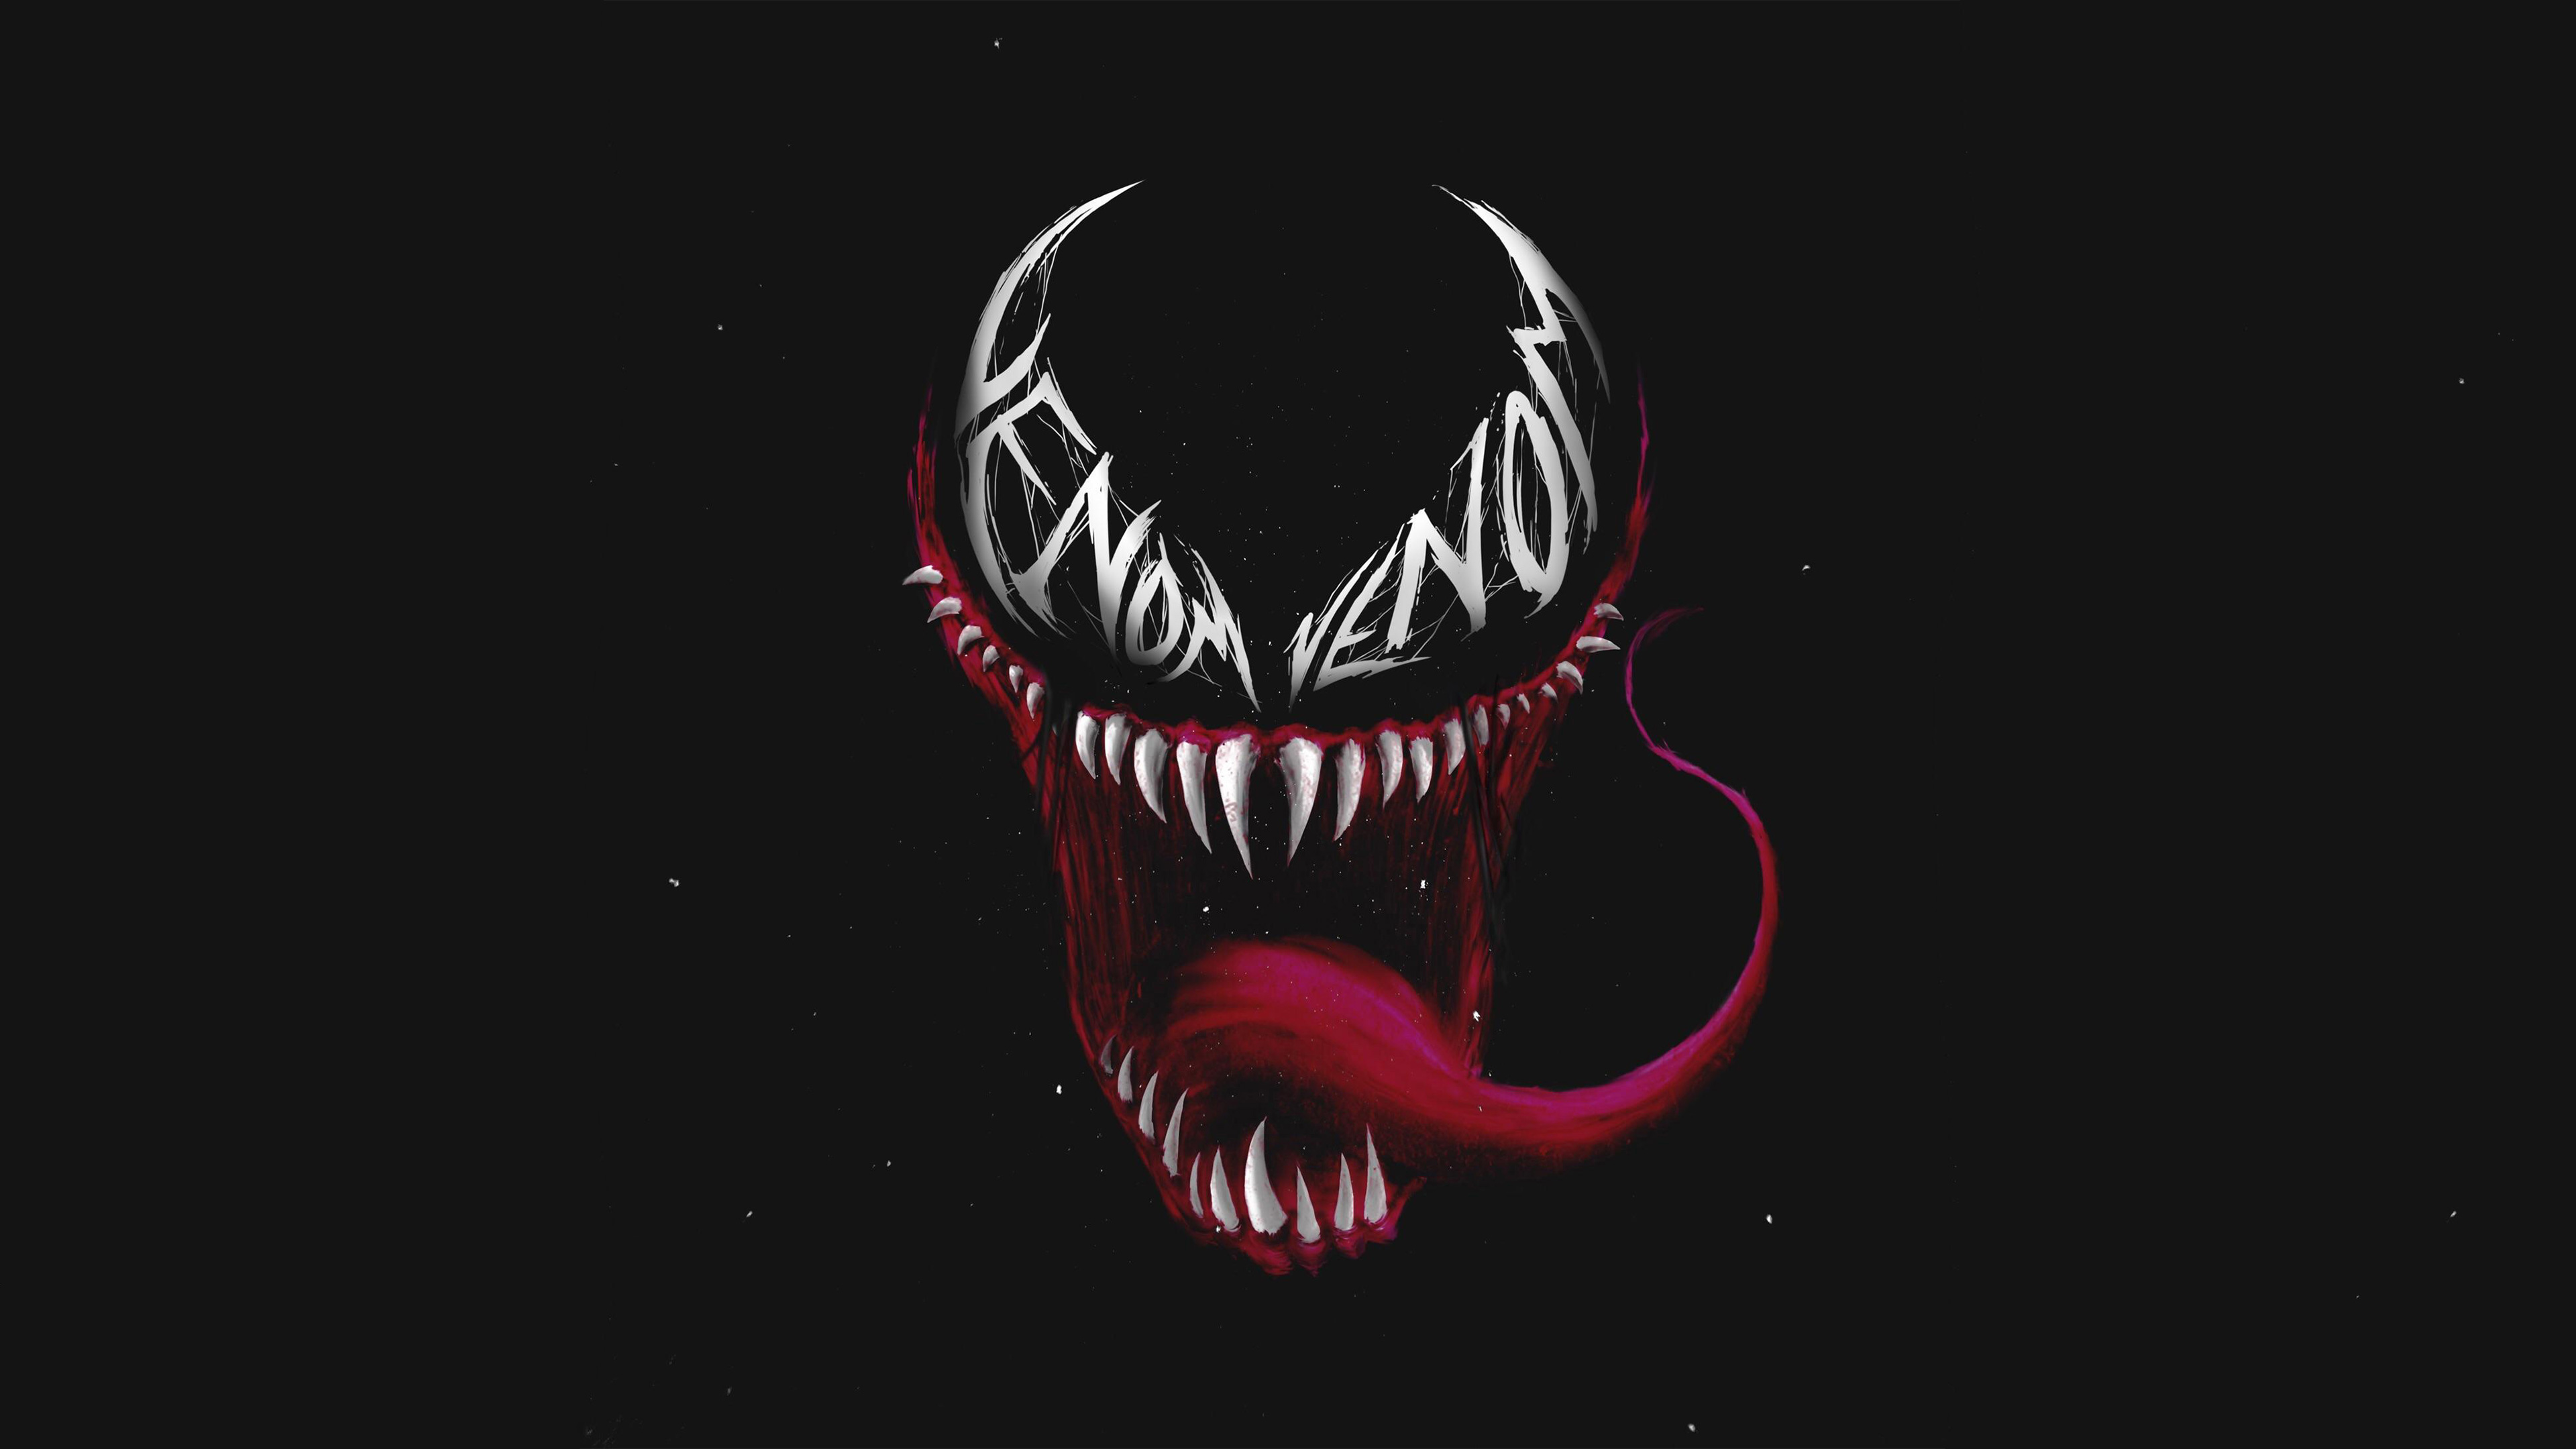 Venom Wallpapers For Iphone